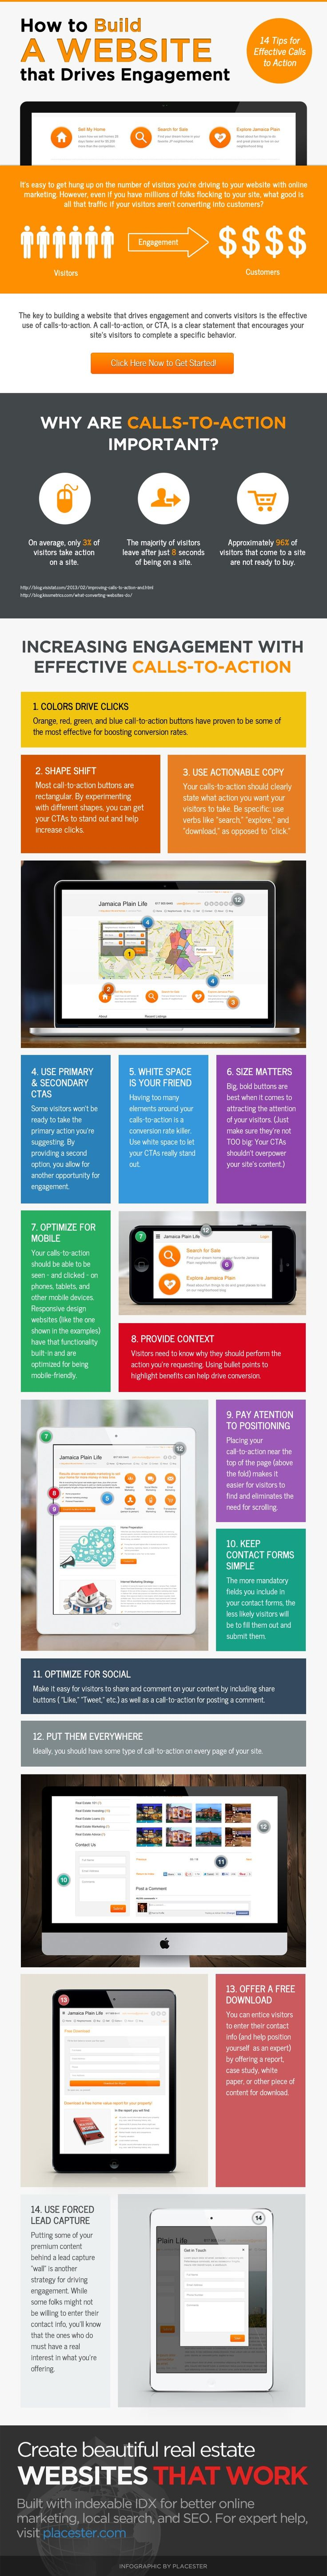 Creating Website Calls-to-Action That Build Your Real Estate Business [Infographic]   Inman News